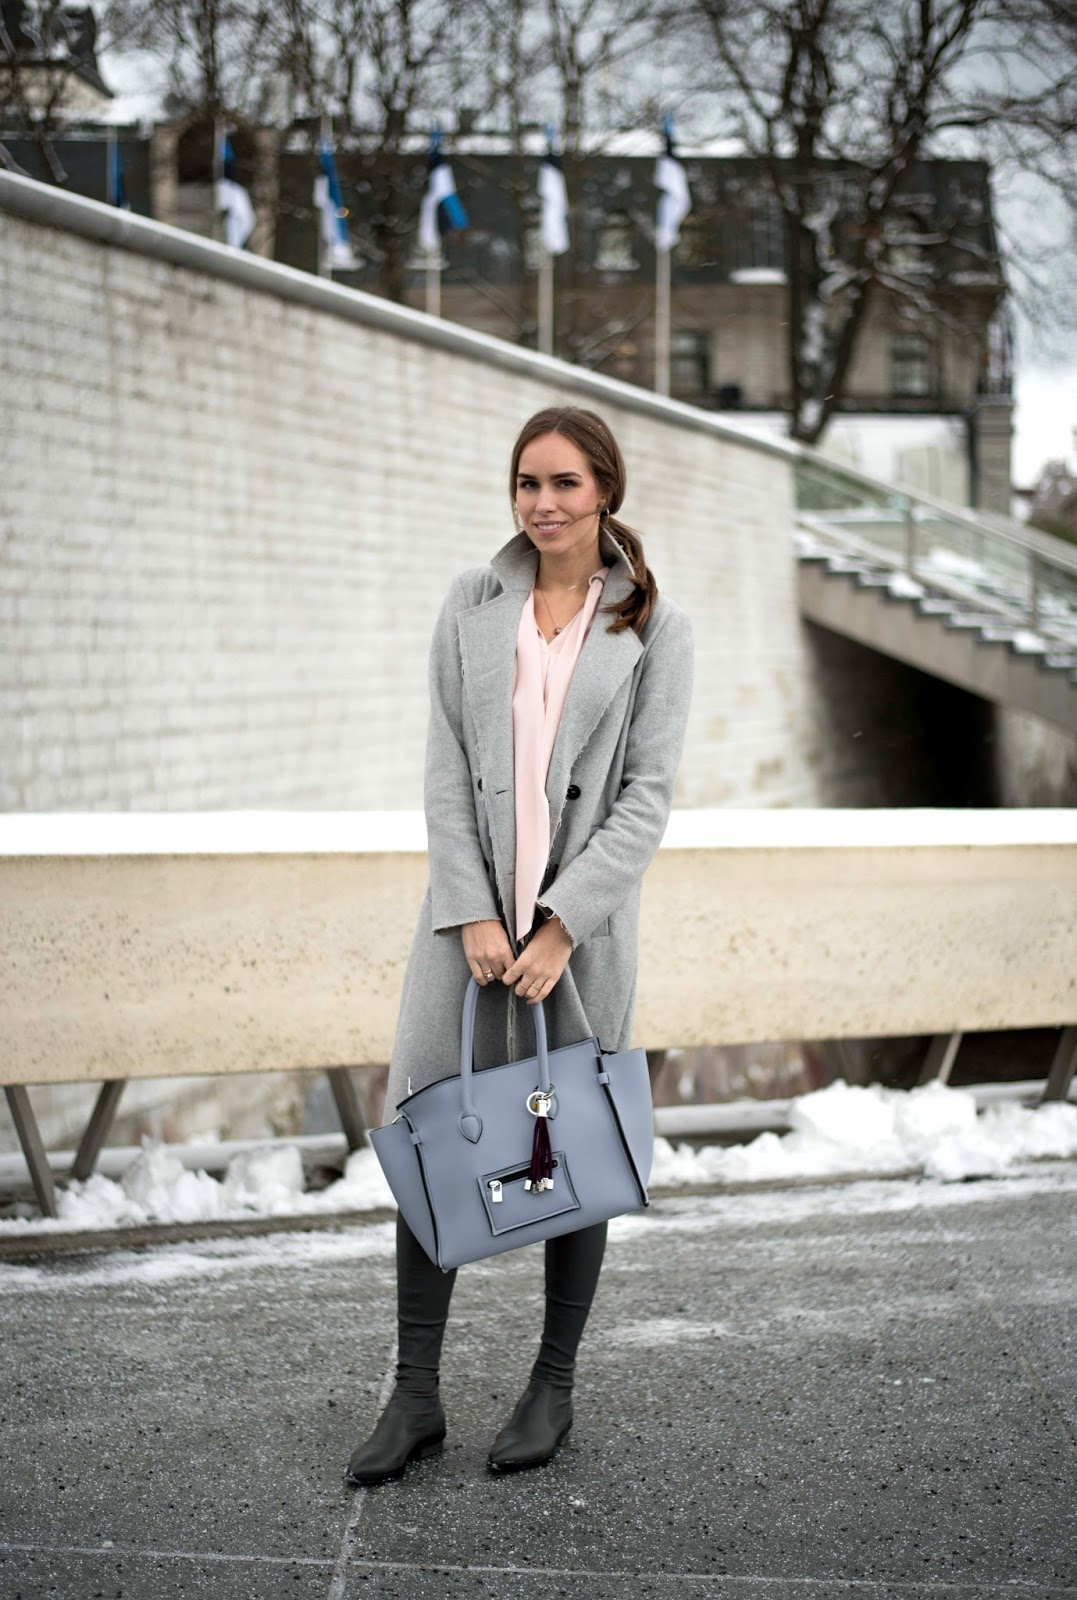 gray wool coat winter outfit over knee boots save my bag